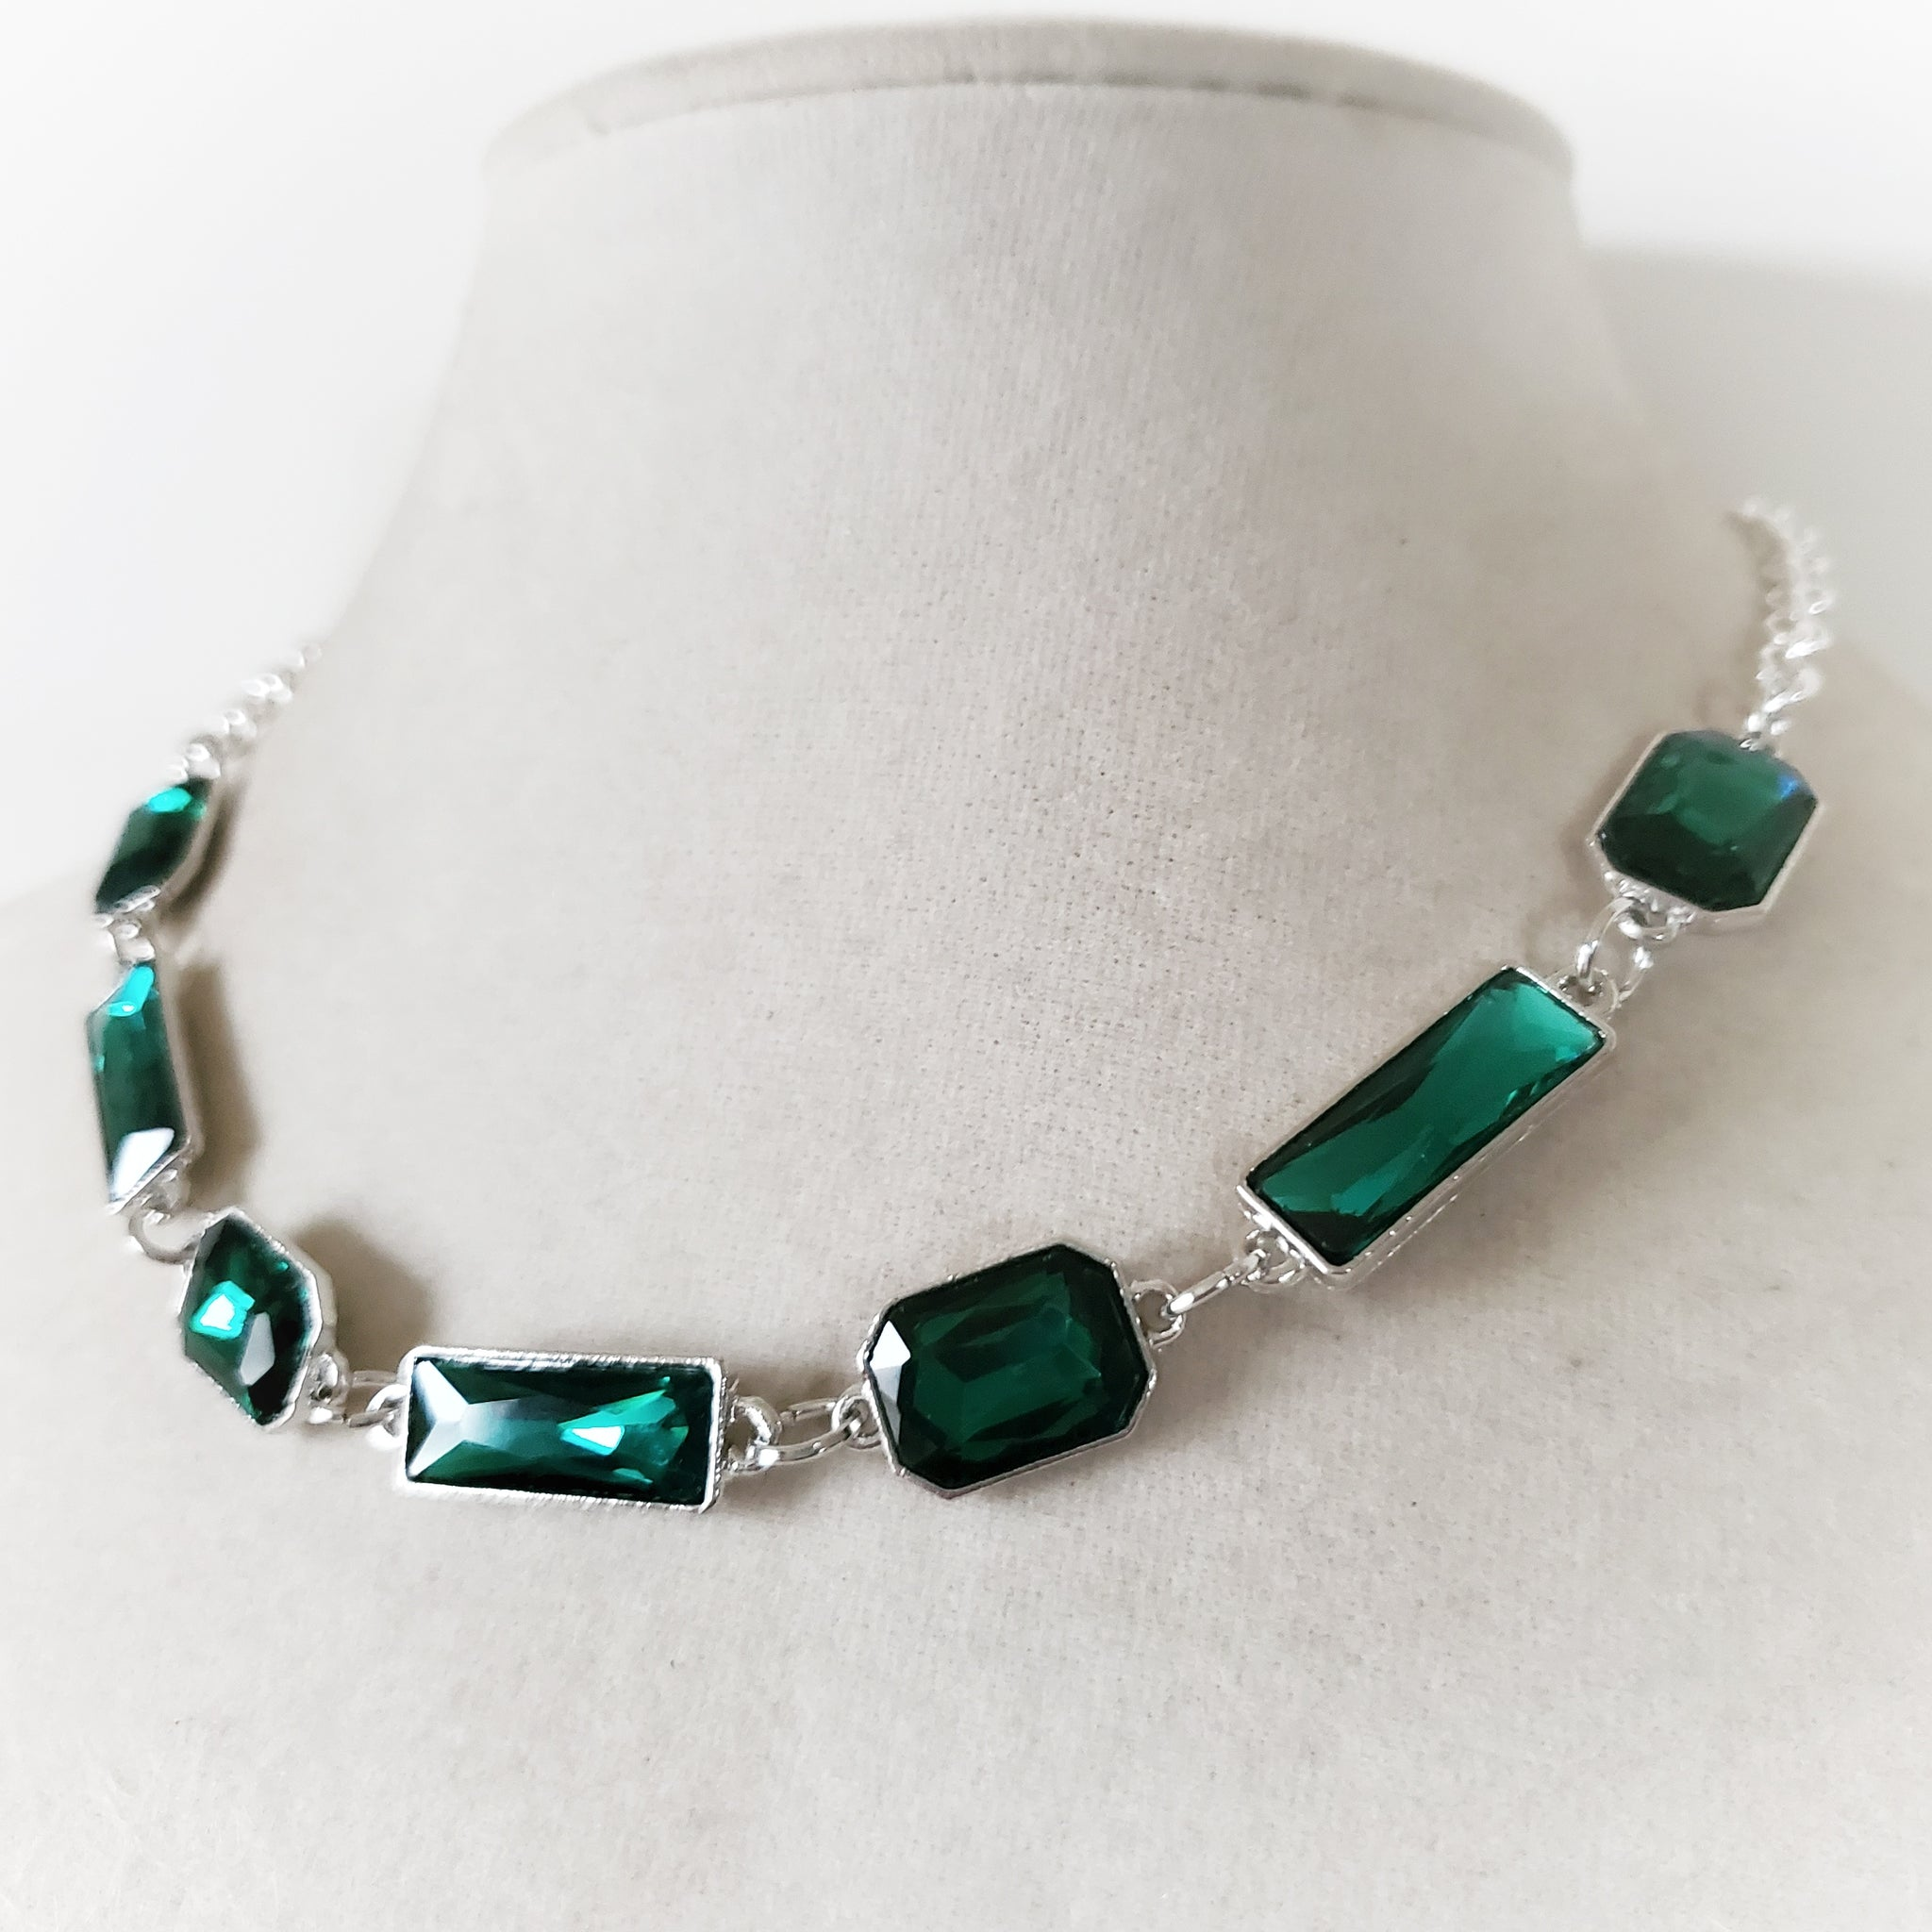 Emerald Cut Rhinestone Necklace in Green or Blue